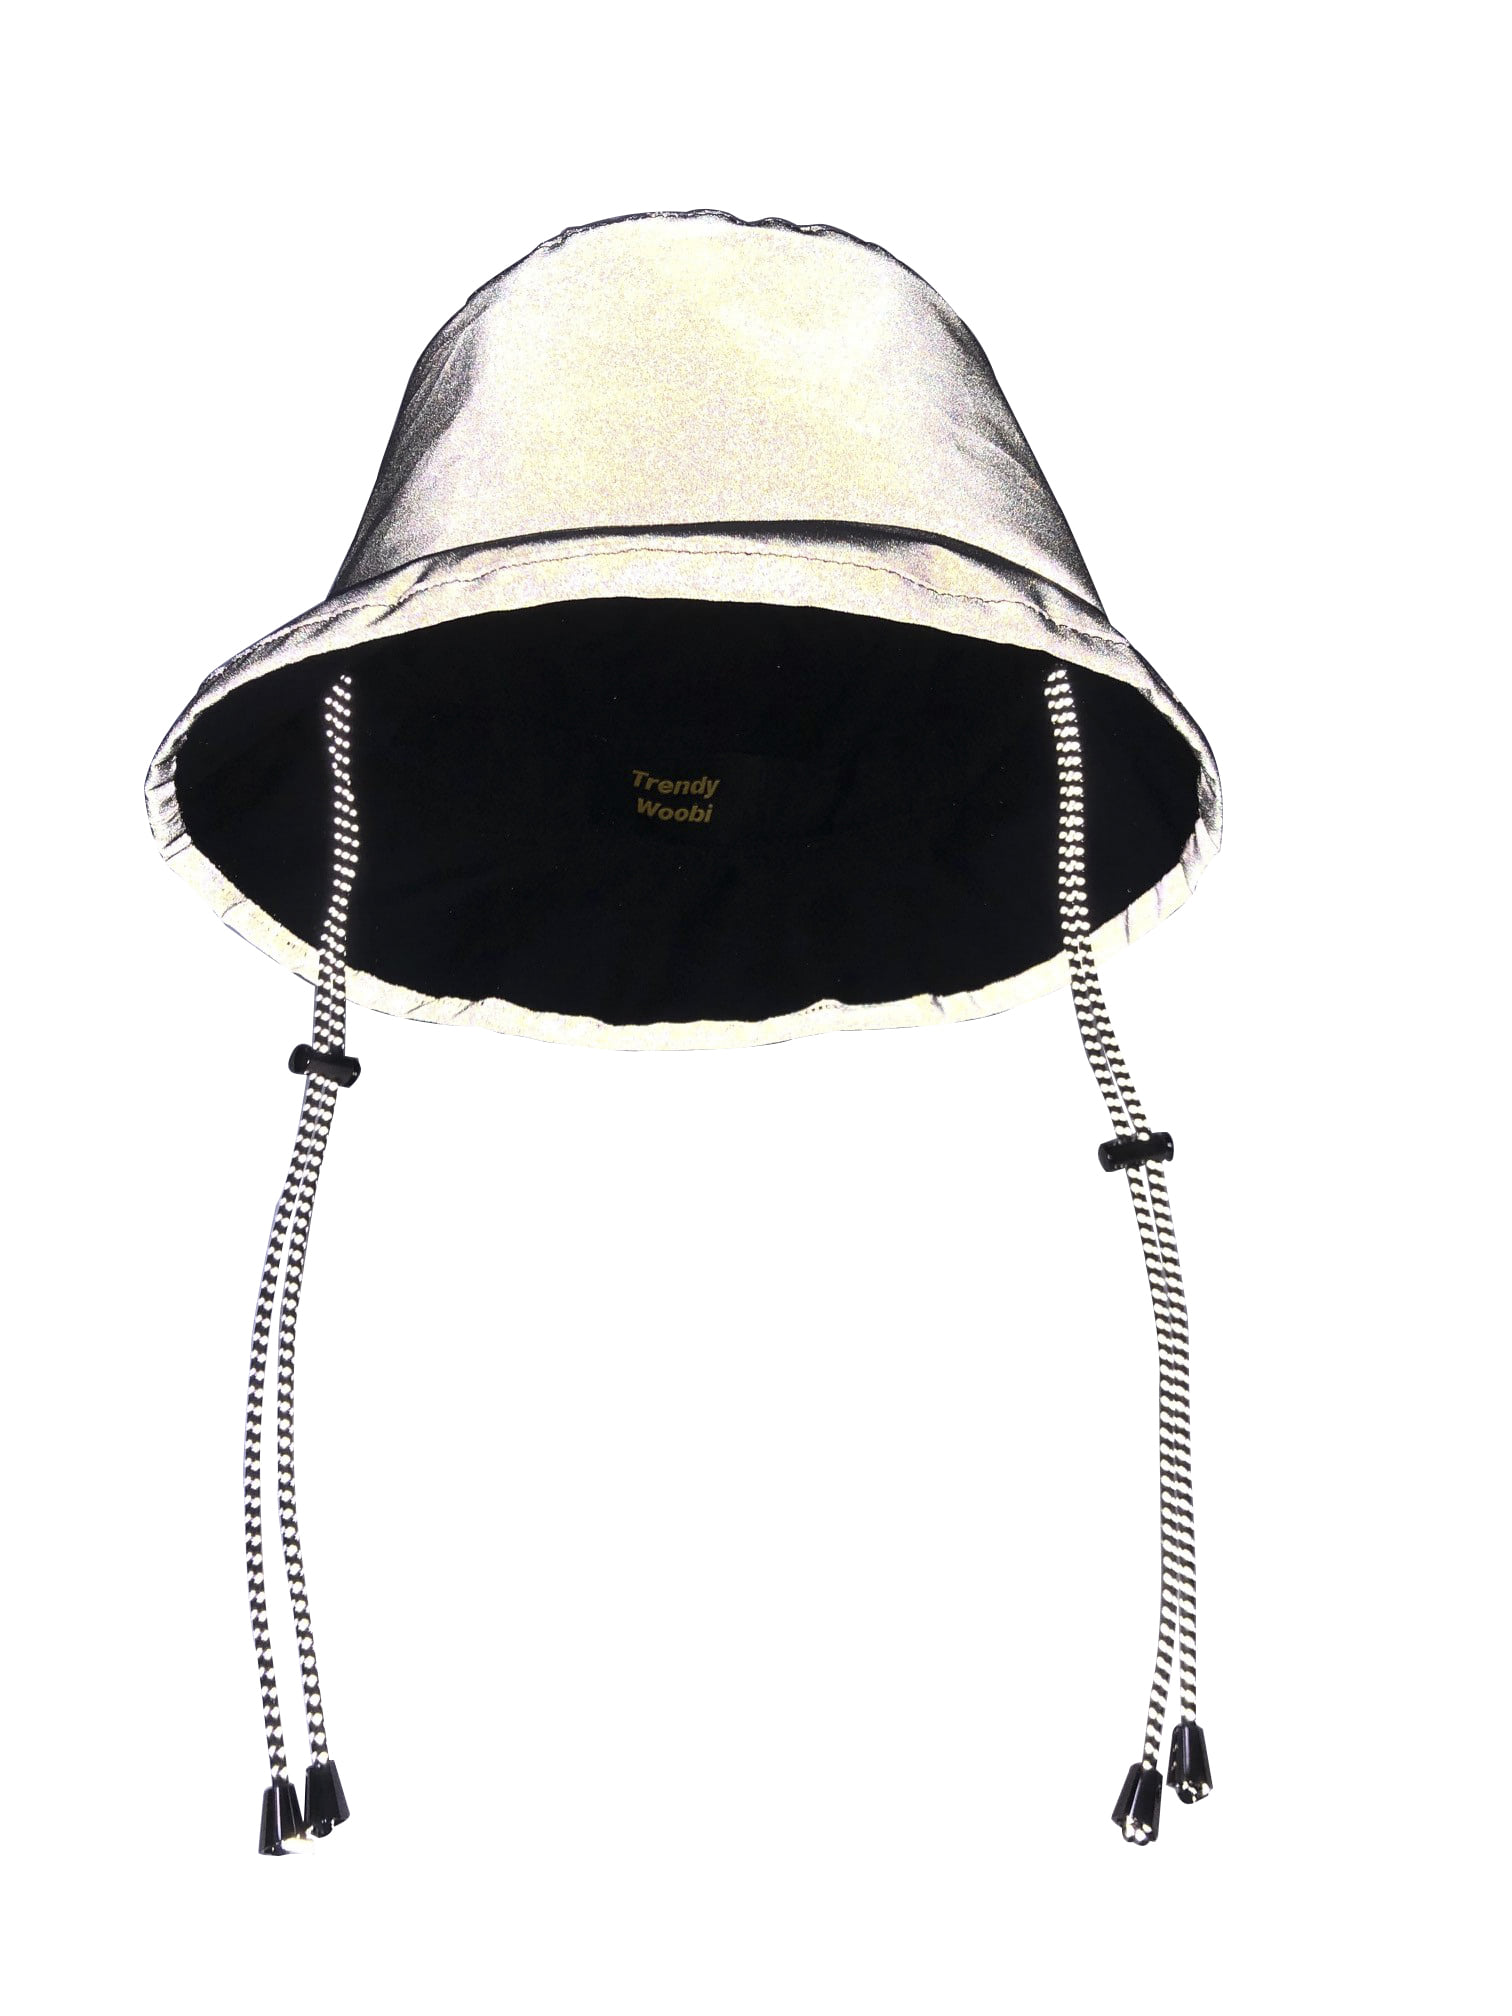 Scotch rope buckethat (reflective)